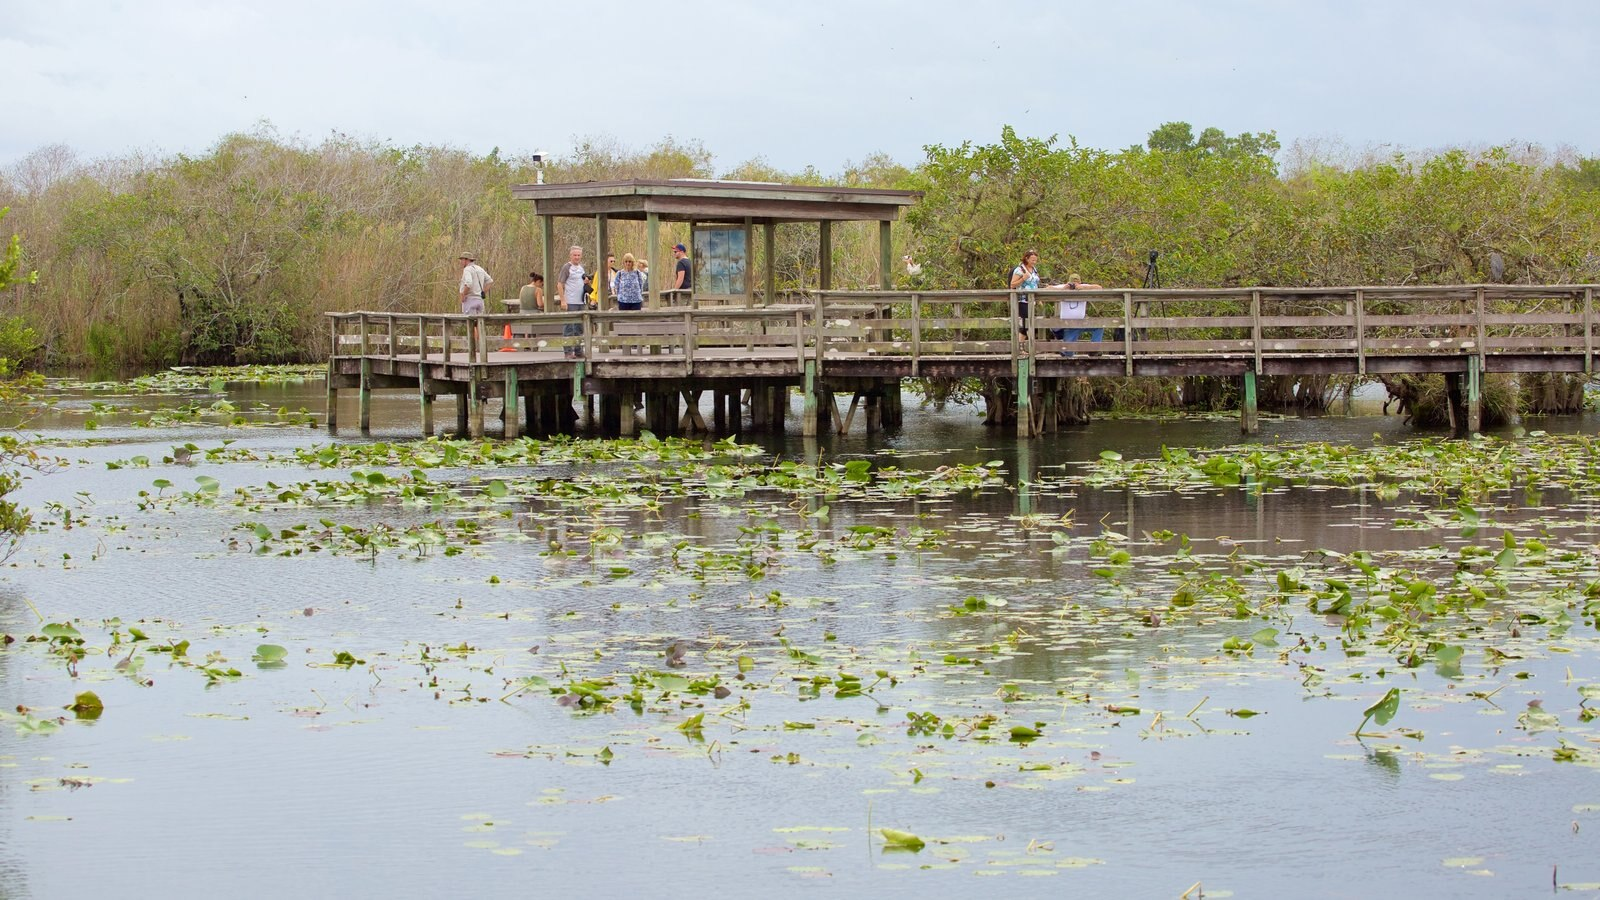 Anhinga Trail which includes a pond as well as a small group of people